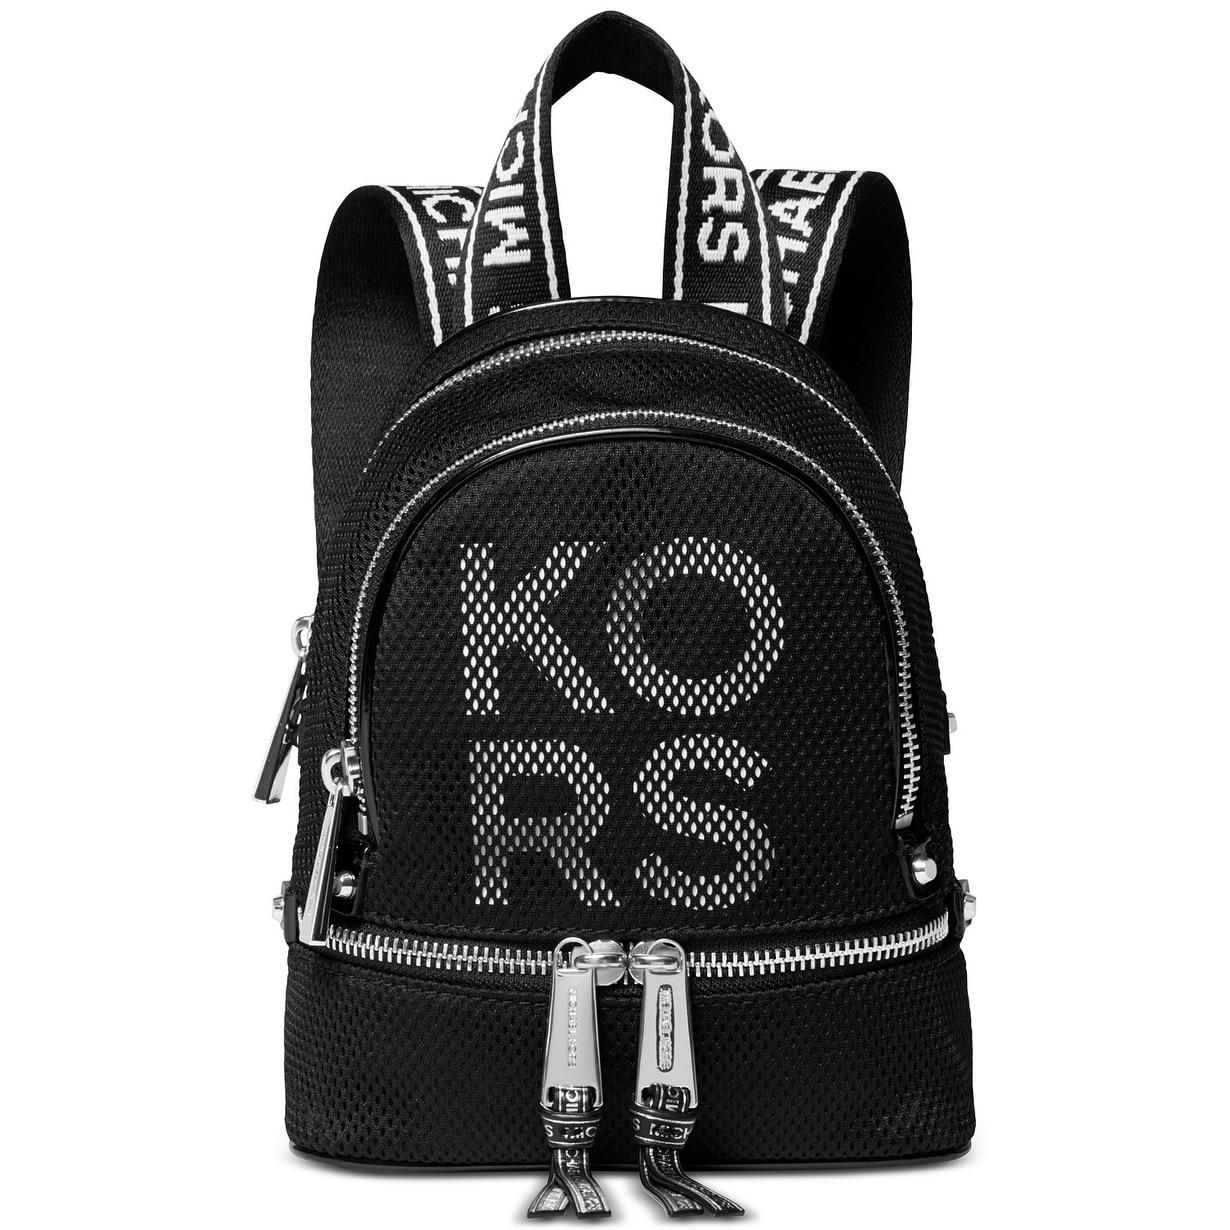 acd9e52962a2 Shop MICHAEL Michael Kors Rhea Zip Extra Small Logo Backpack Black/Silver -  Free Shipping Today - Overstock - 28021381